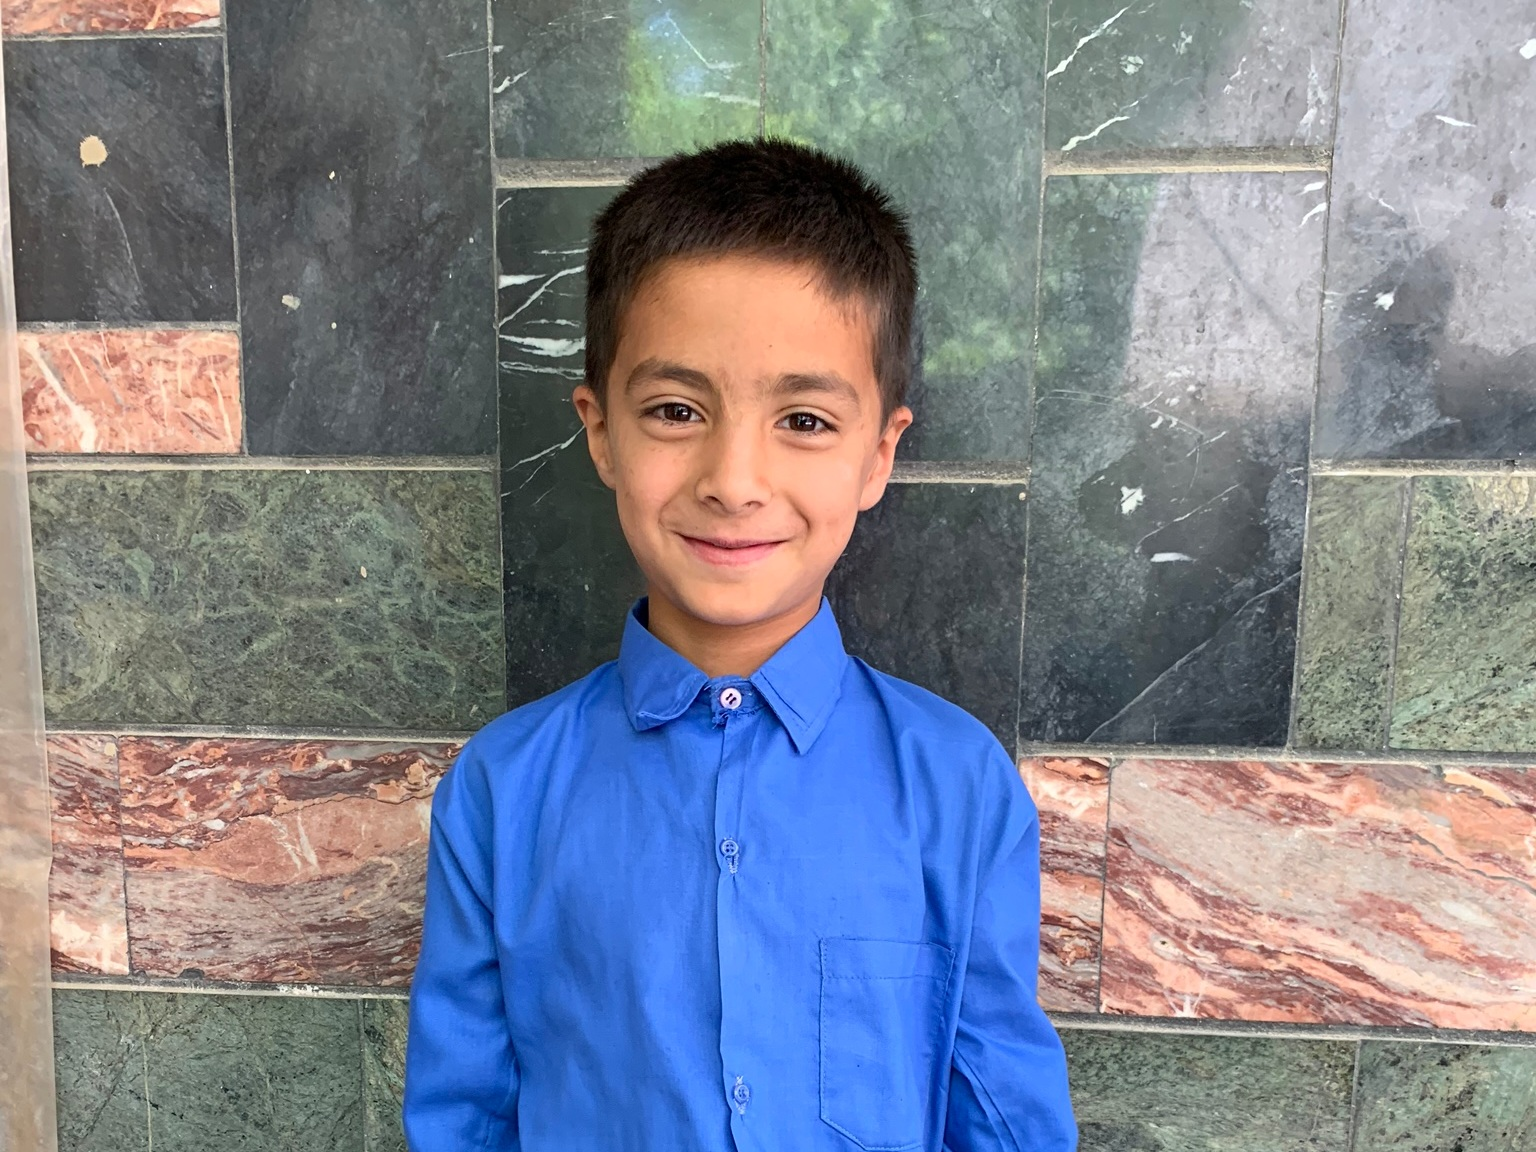 Ali Akbar, Age 8 - Ali Akbar has 4 siblings. His mother does not have work at this time. His father is a driver.BE ALI AKBAR'S PARTNER>